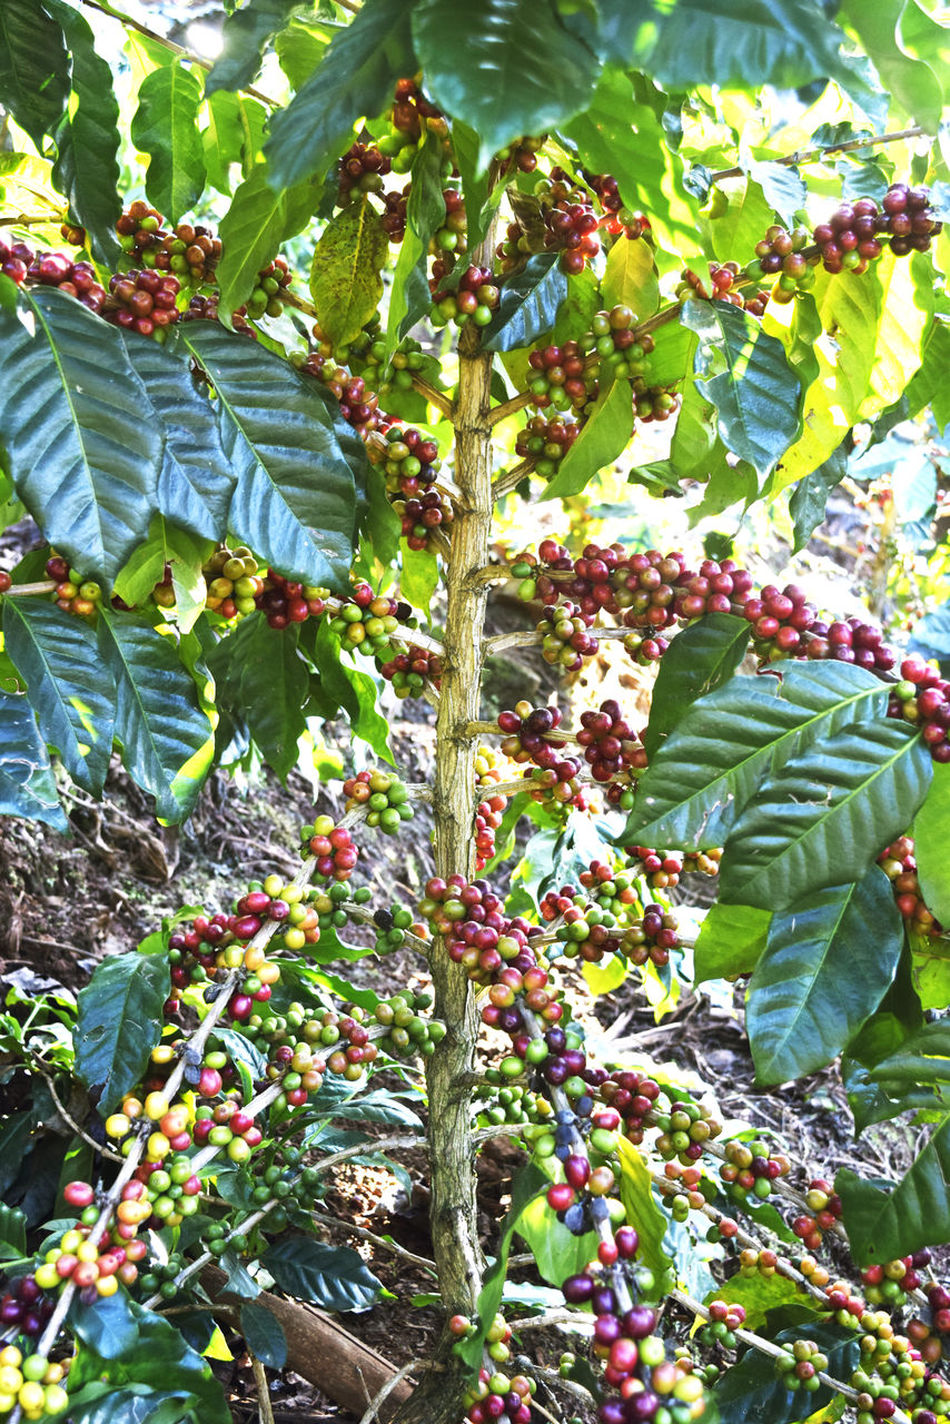 Beauty In Nature Branch Close-up Day Food Food And Drink Freshness Fruit Green Color Growing Growth Hanging Healthy Eating Leaf Low Angle View Nature No People Outdoors Plant Tree